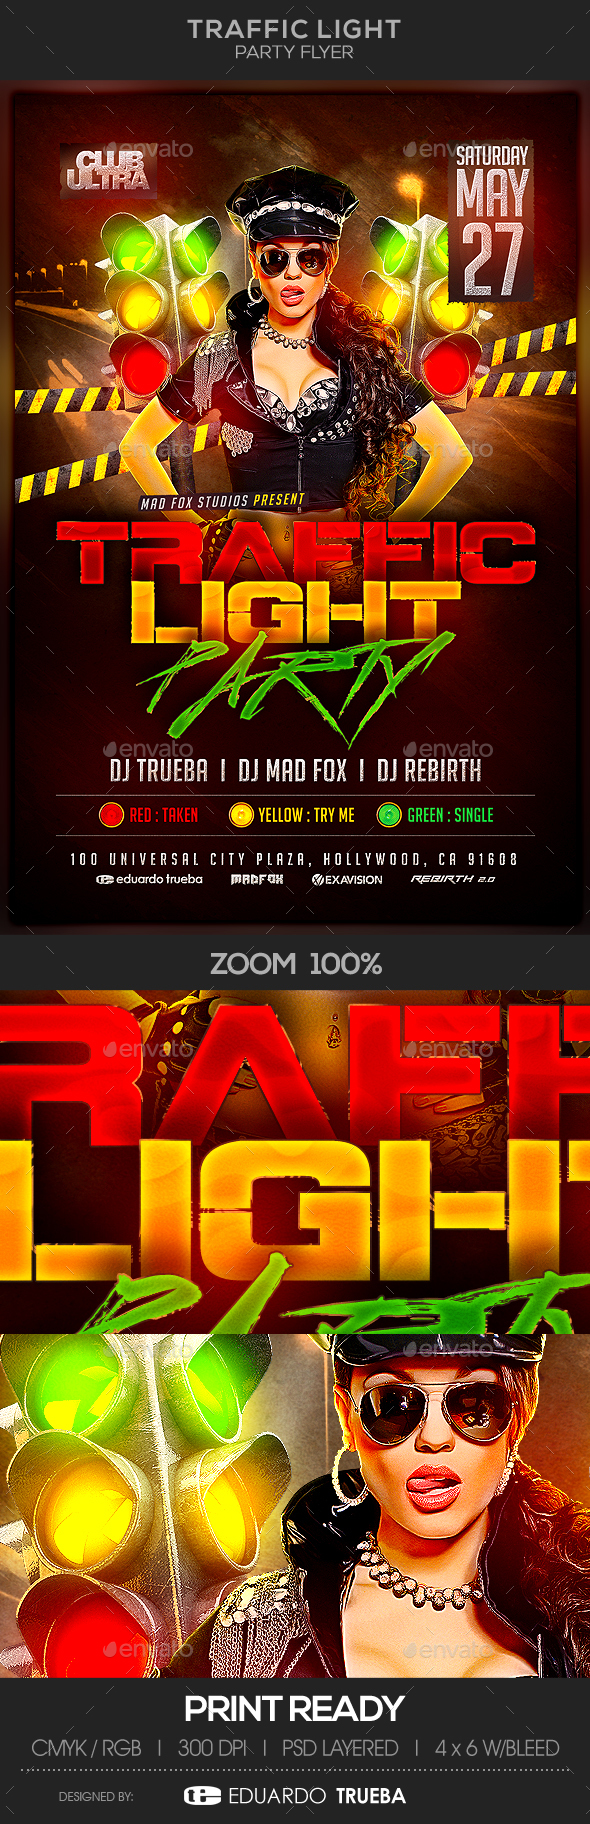 Traffic Light Party Flyer - Clubs & Parties Events